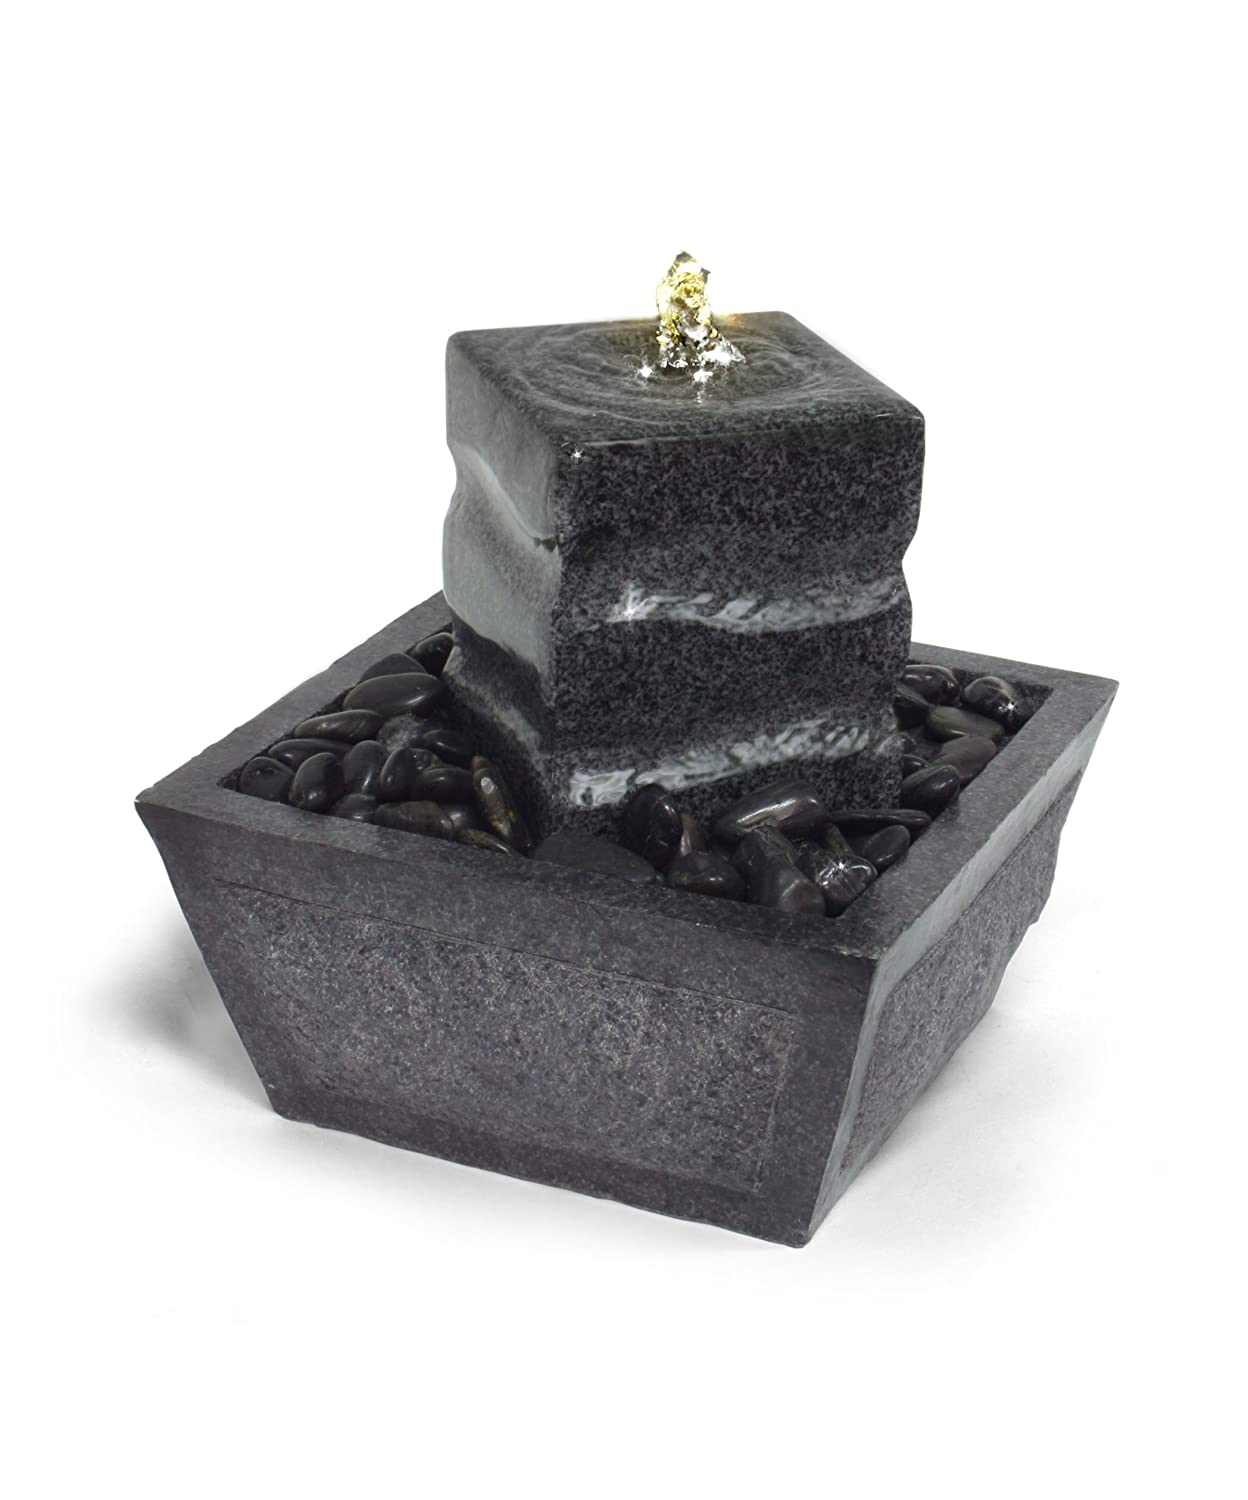 Algreen Illuminated Relaxation Fountain with Granite Pillar and Natural Stones